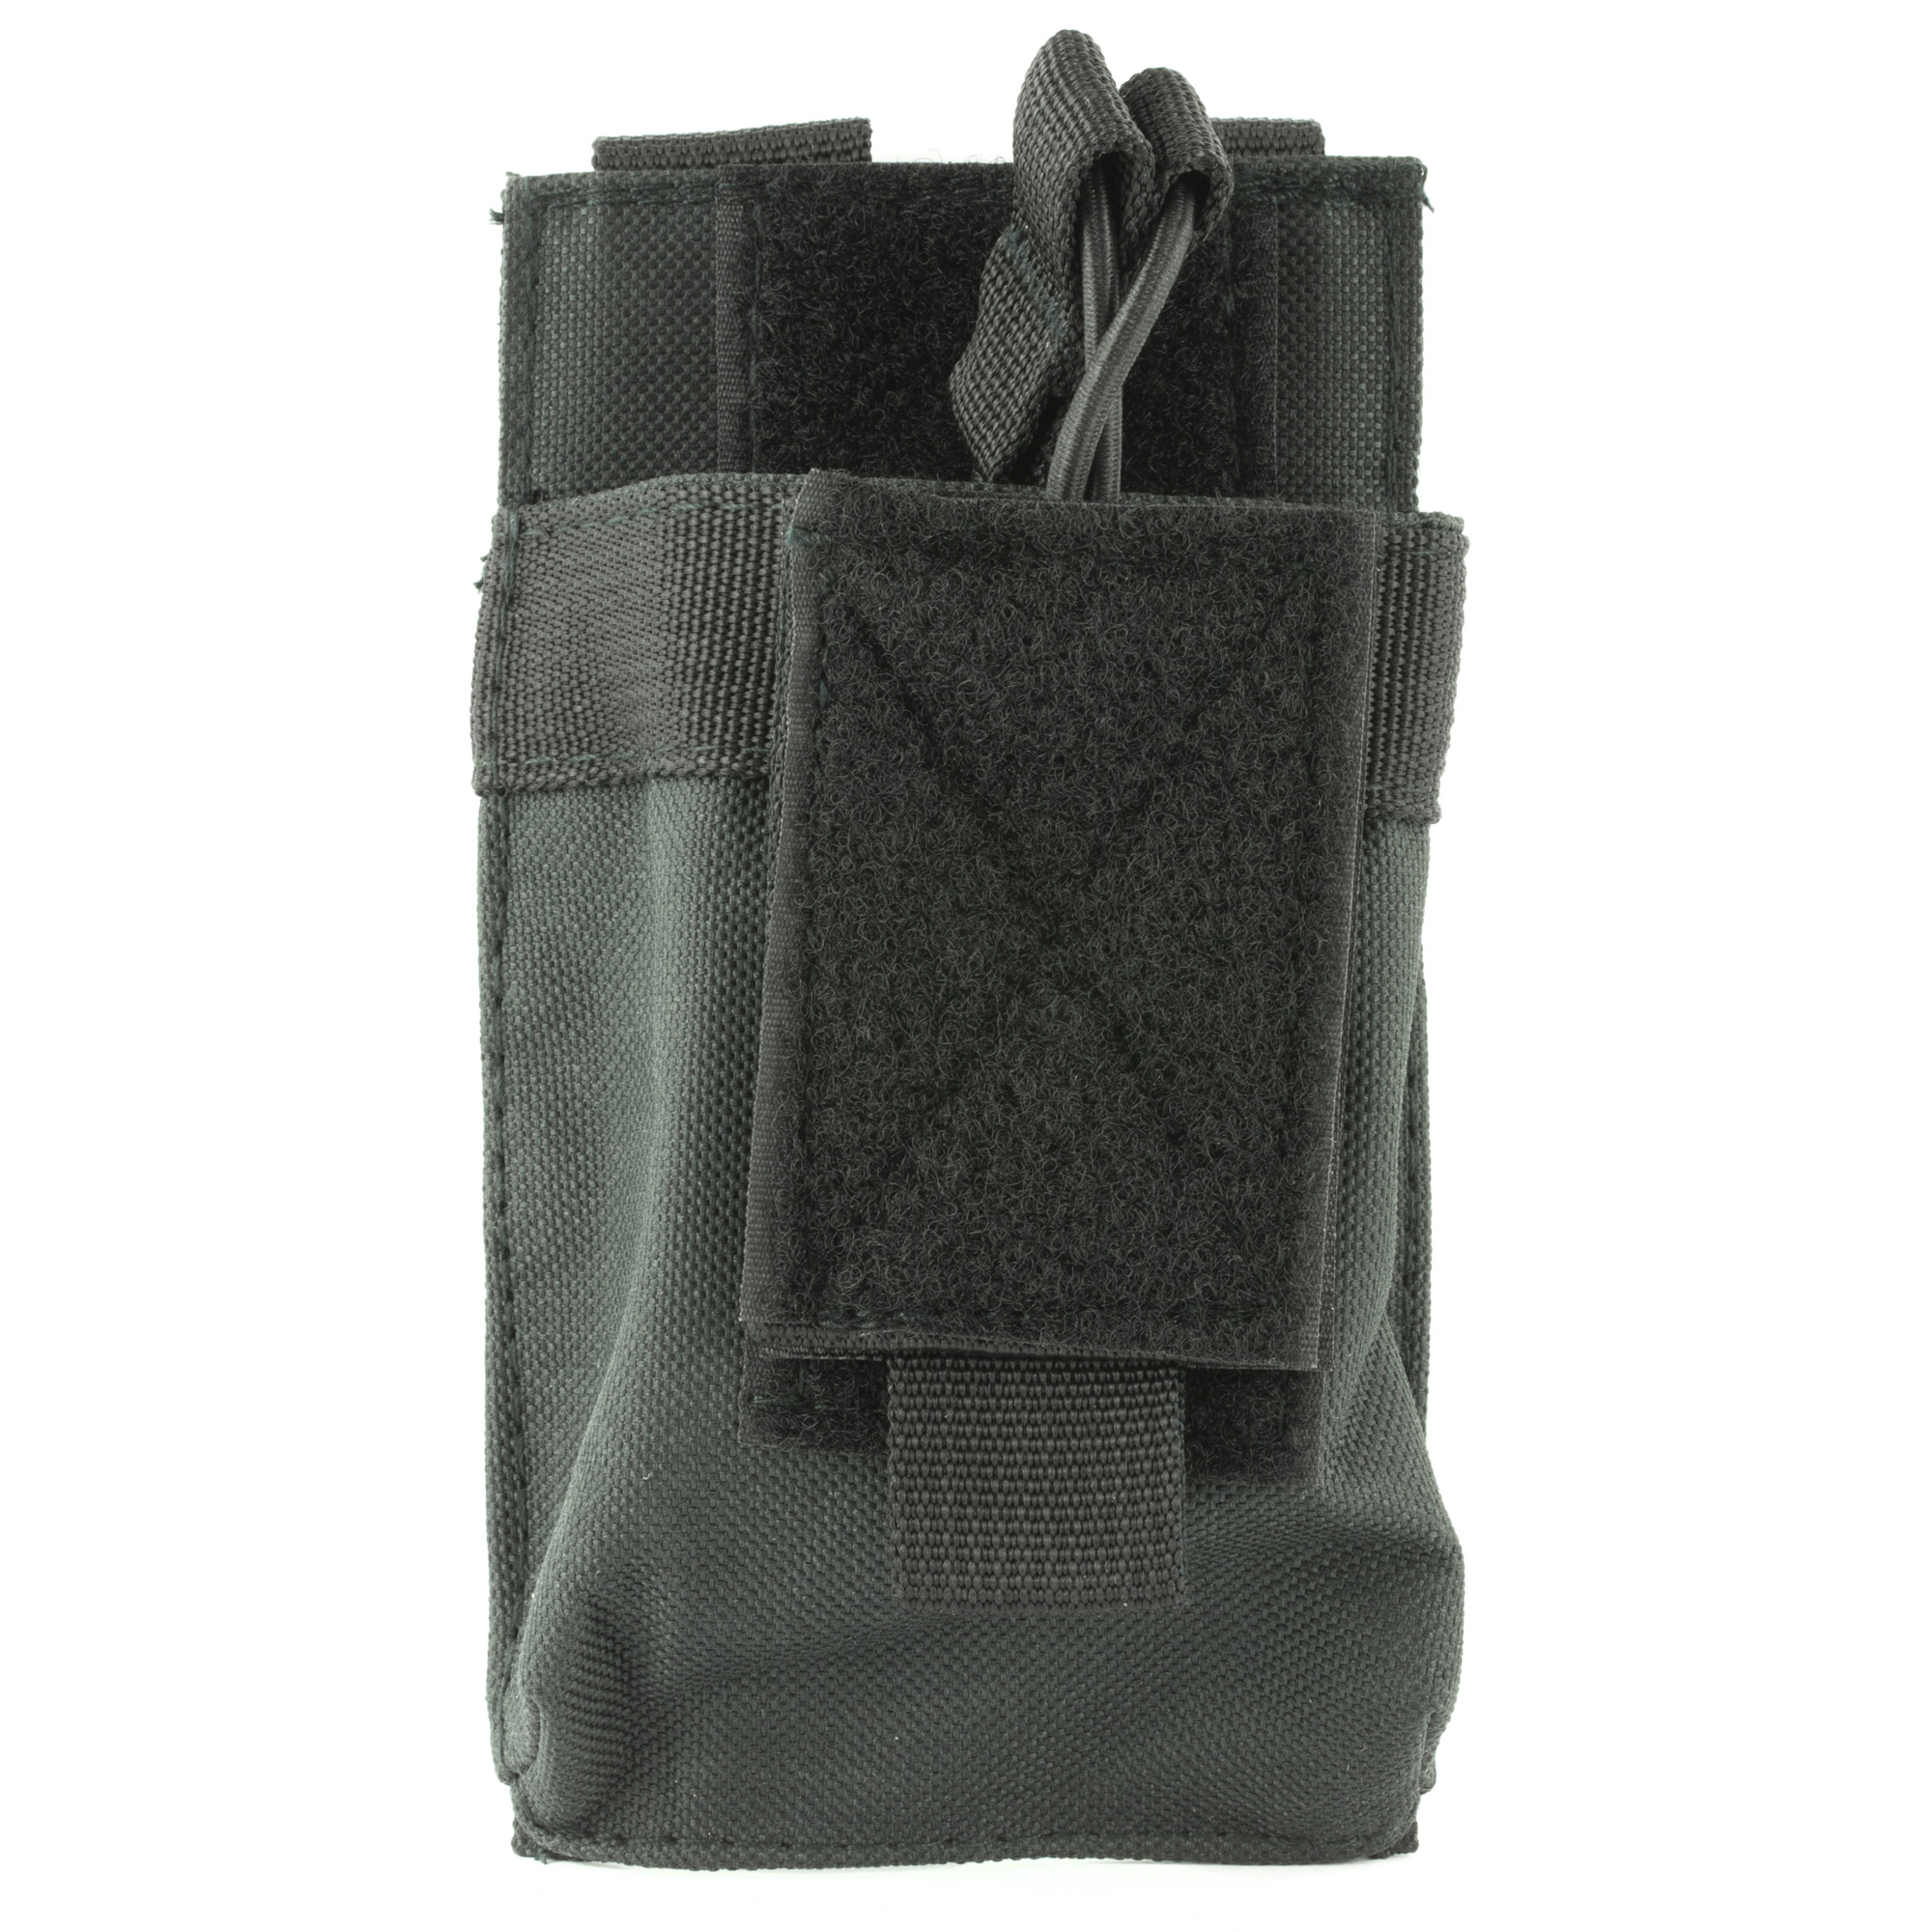 "This single AR magazine pouch holds virtually any 5.56/223"" or 7.62X39 double stack magazine. Adjustable Bungee Style Retention Straps make Access to your Magazines easy while securely holding them in place."